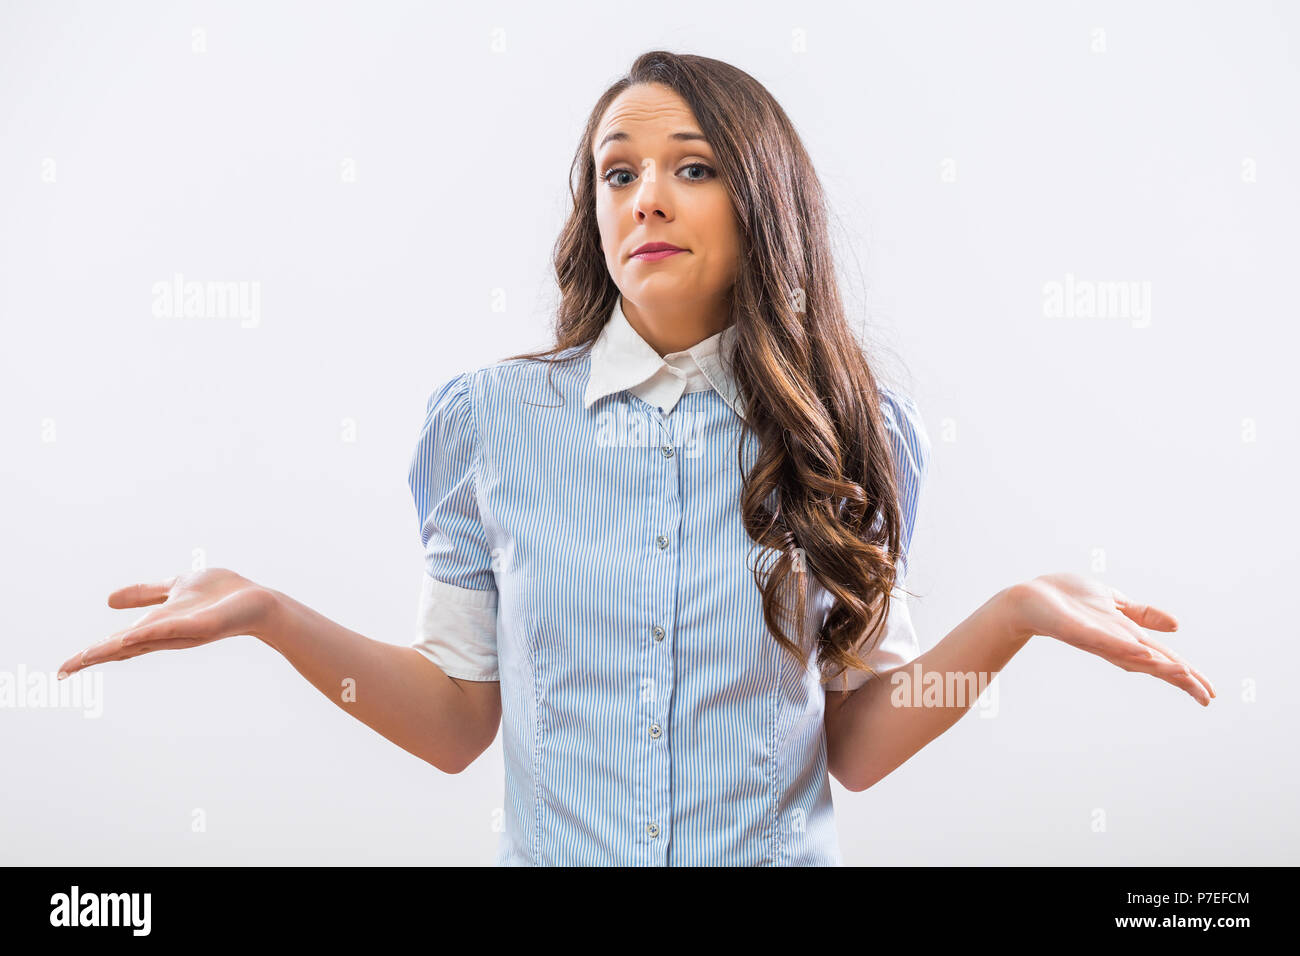 Image of confused businesswoman shrugging on gray background. - Stock Image